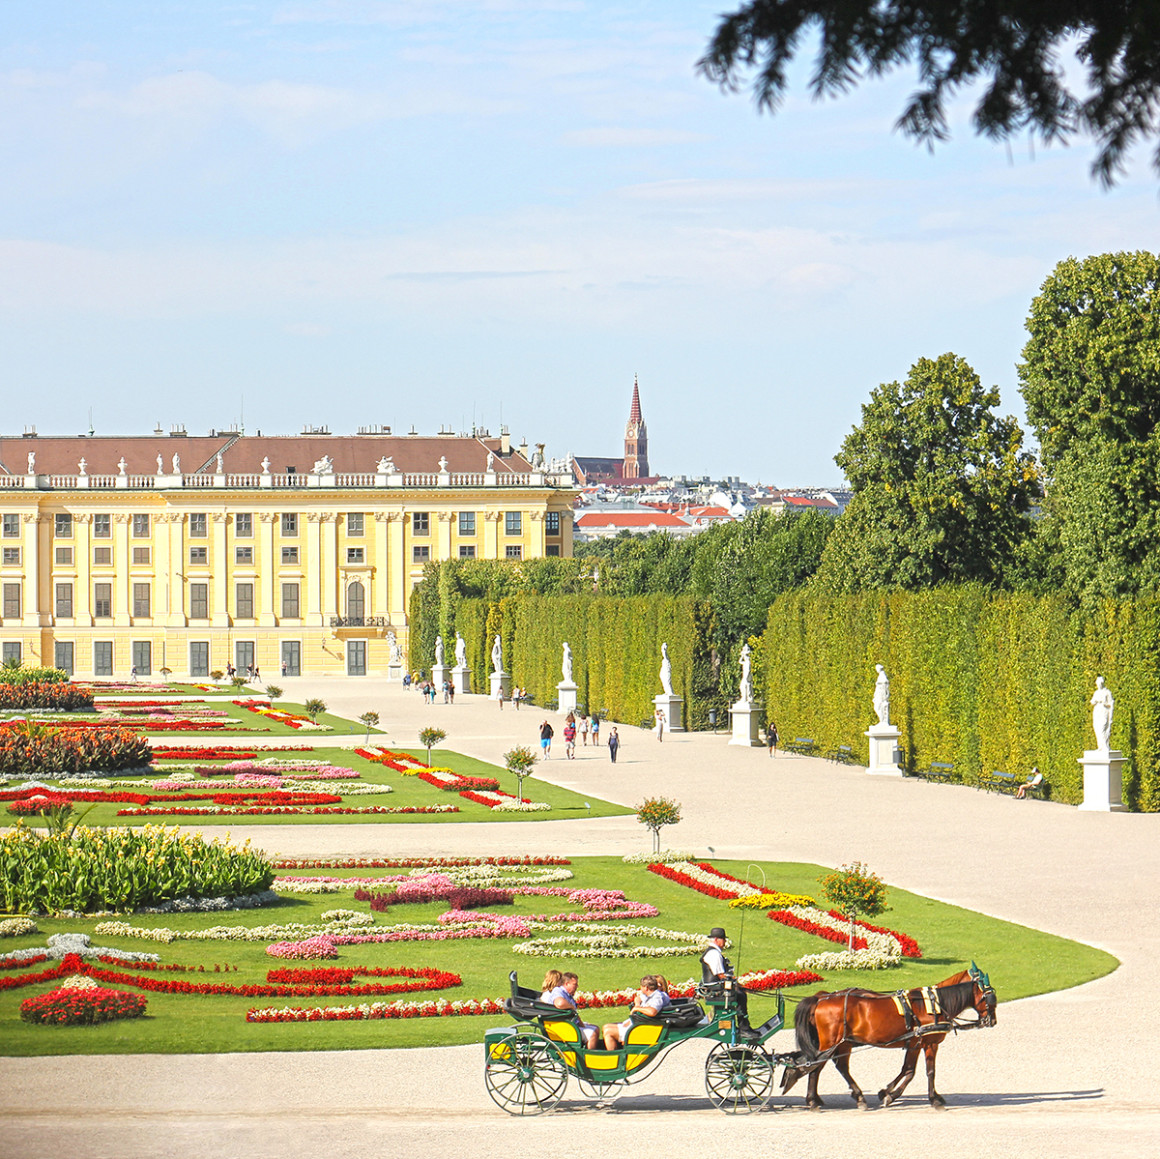 Schonbrunn Palace in Vienna. A blog about getting the train from Budapest - Bratislava - Vienna.